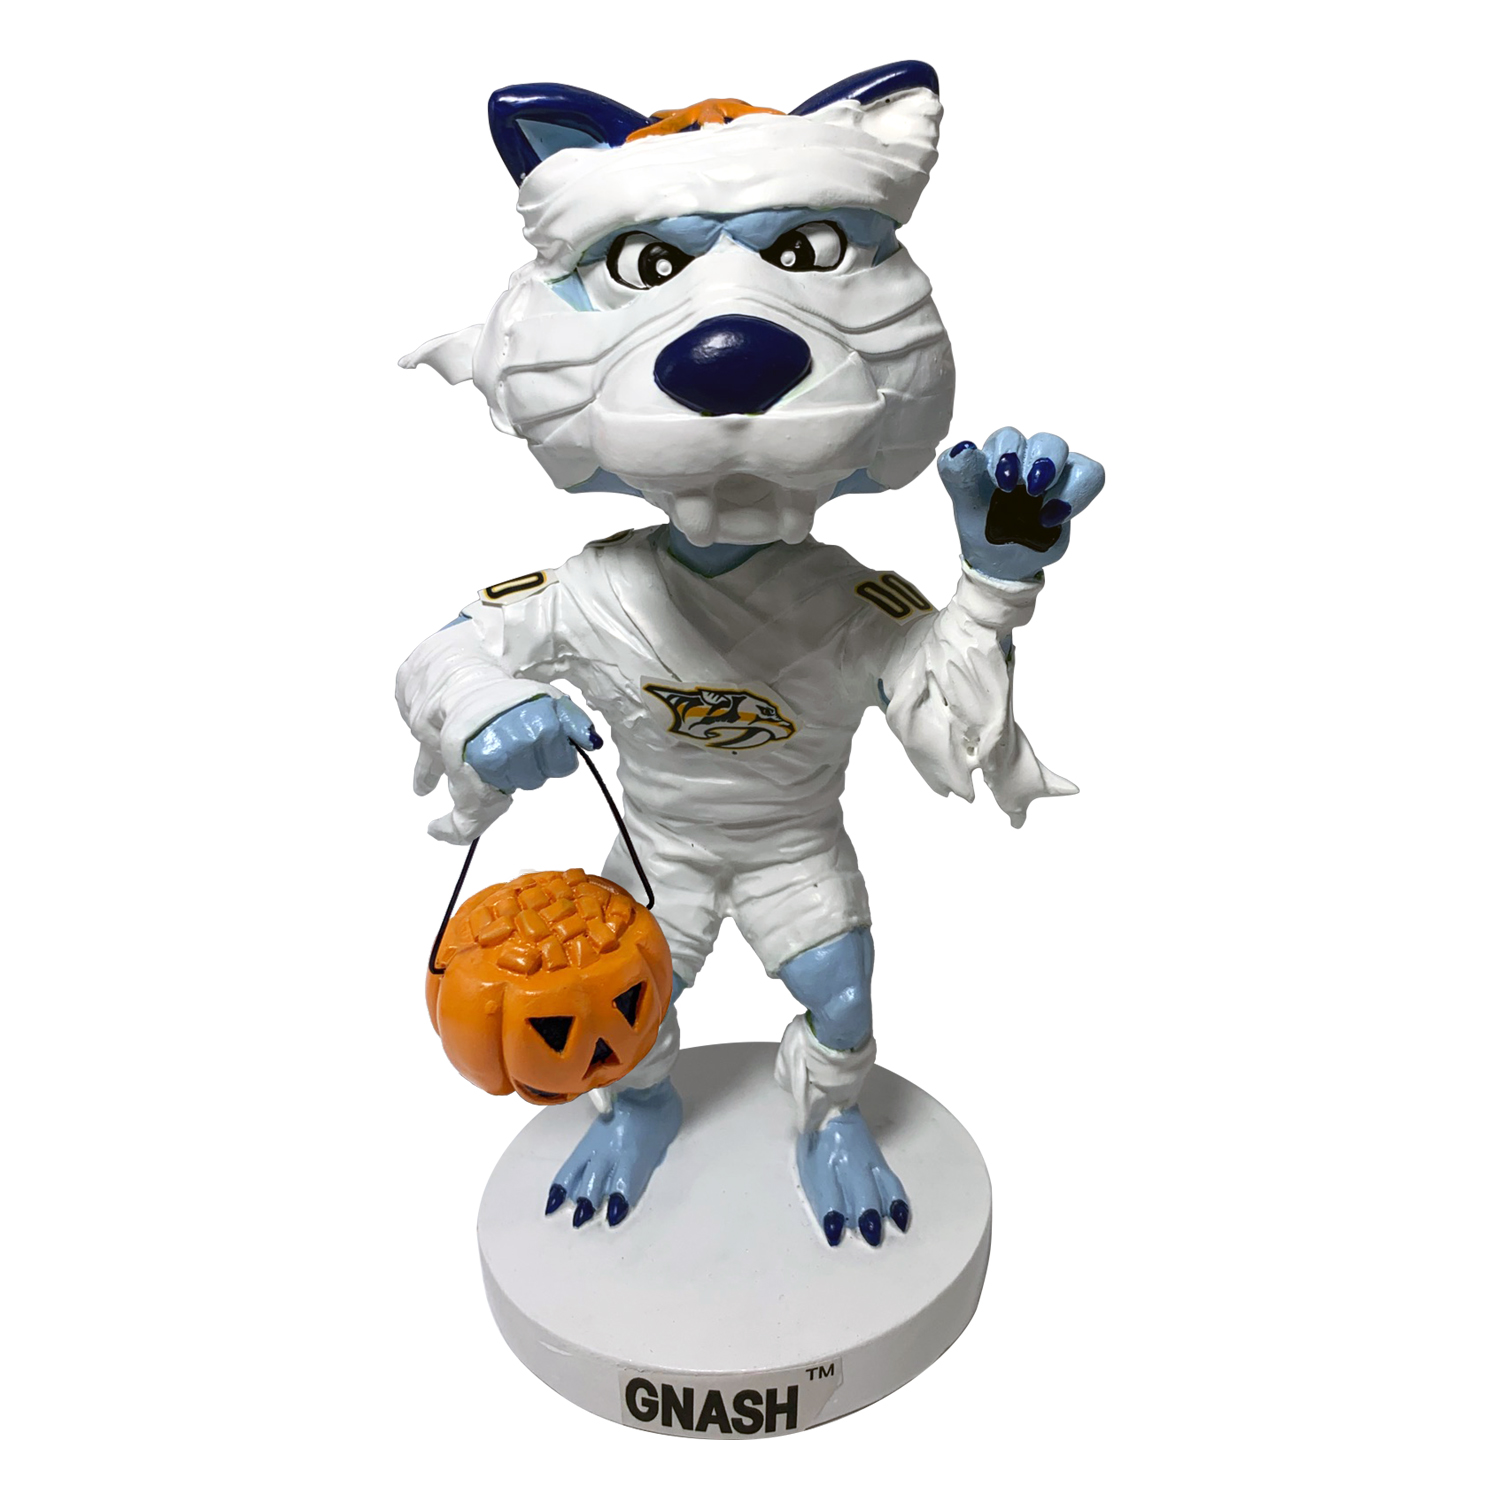 Nashville Predators GNASH Mummy Bobblehead